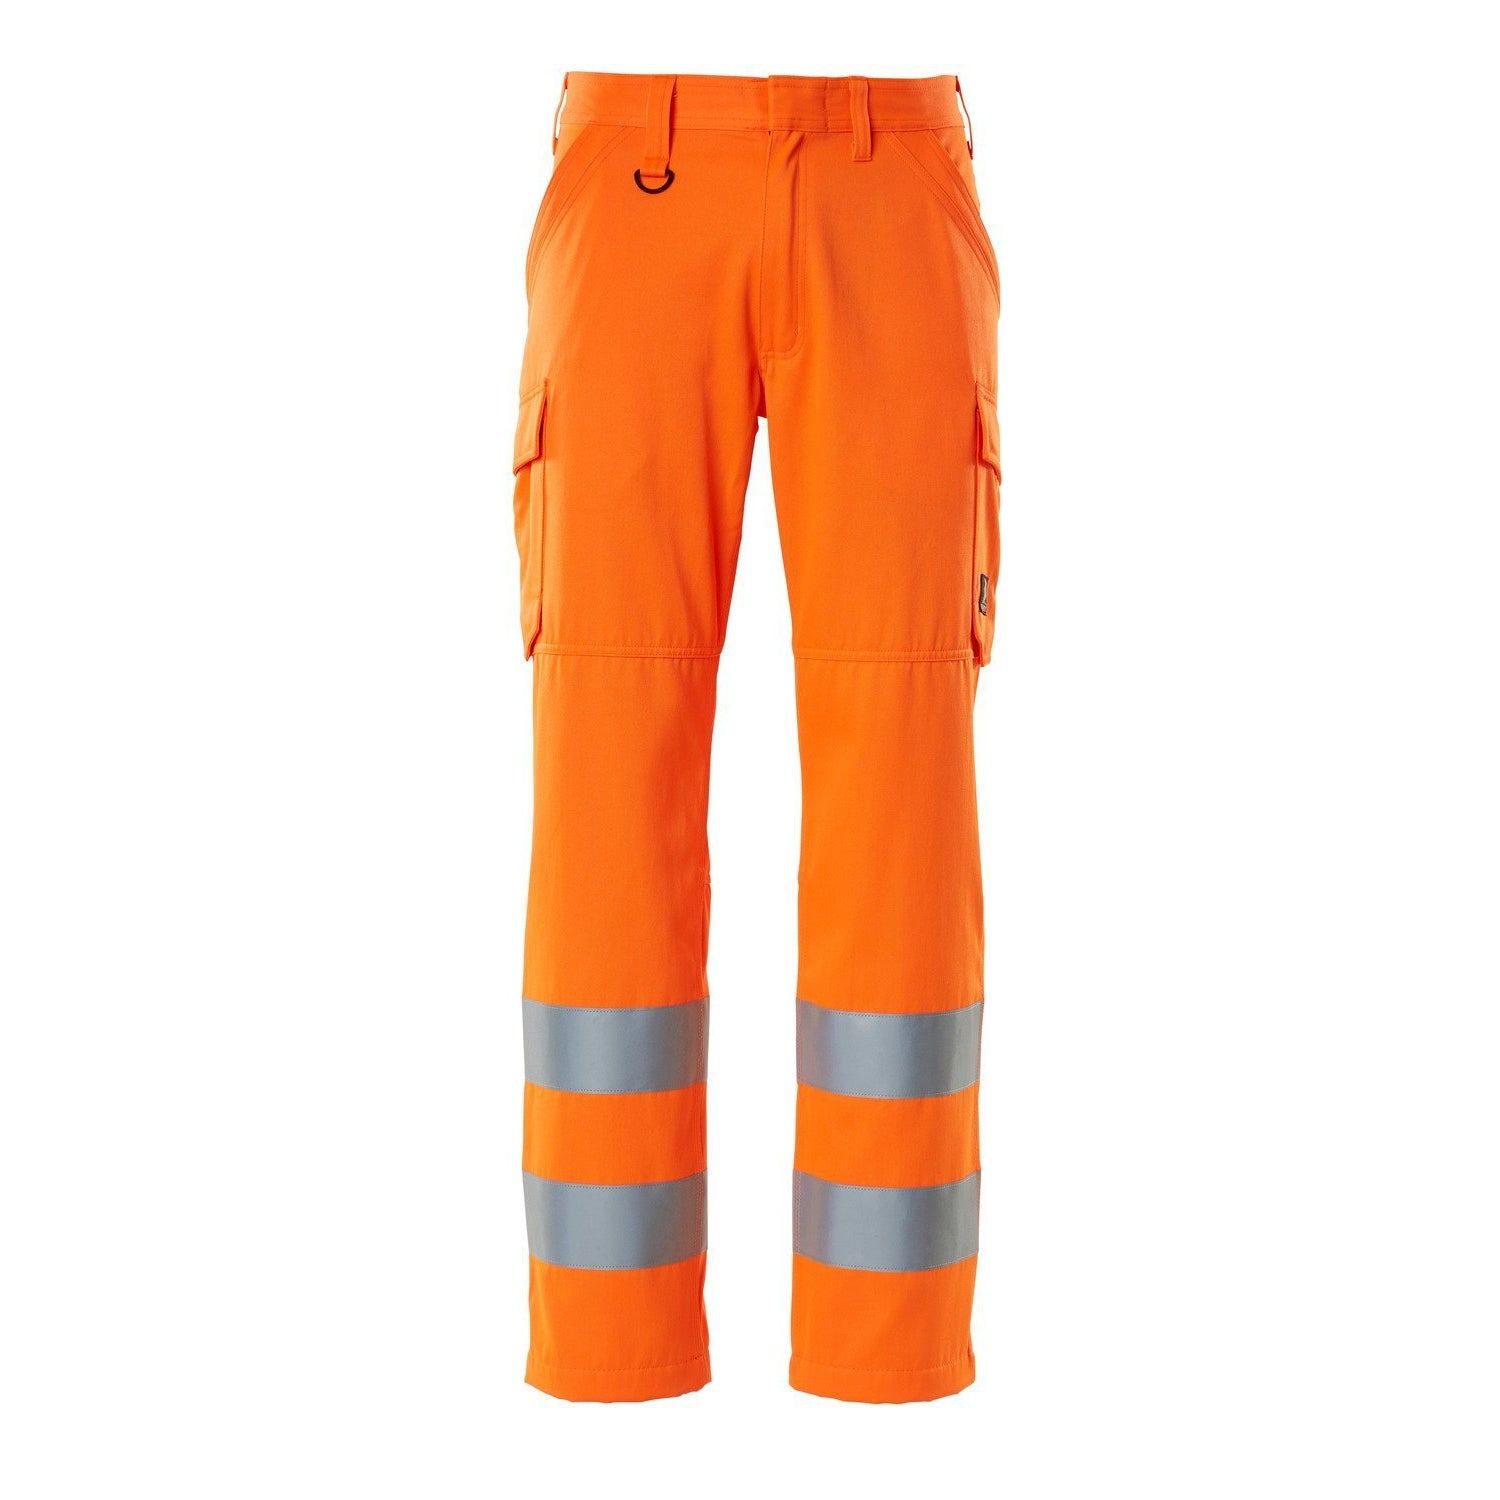 Mascot Safe Light Trousers With Thigh Pockets